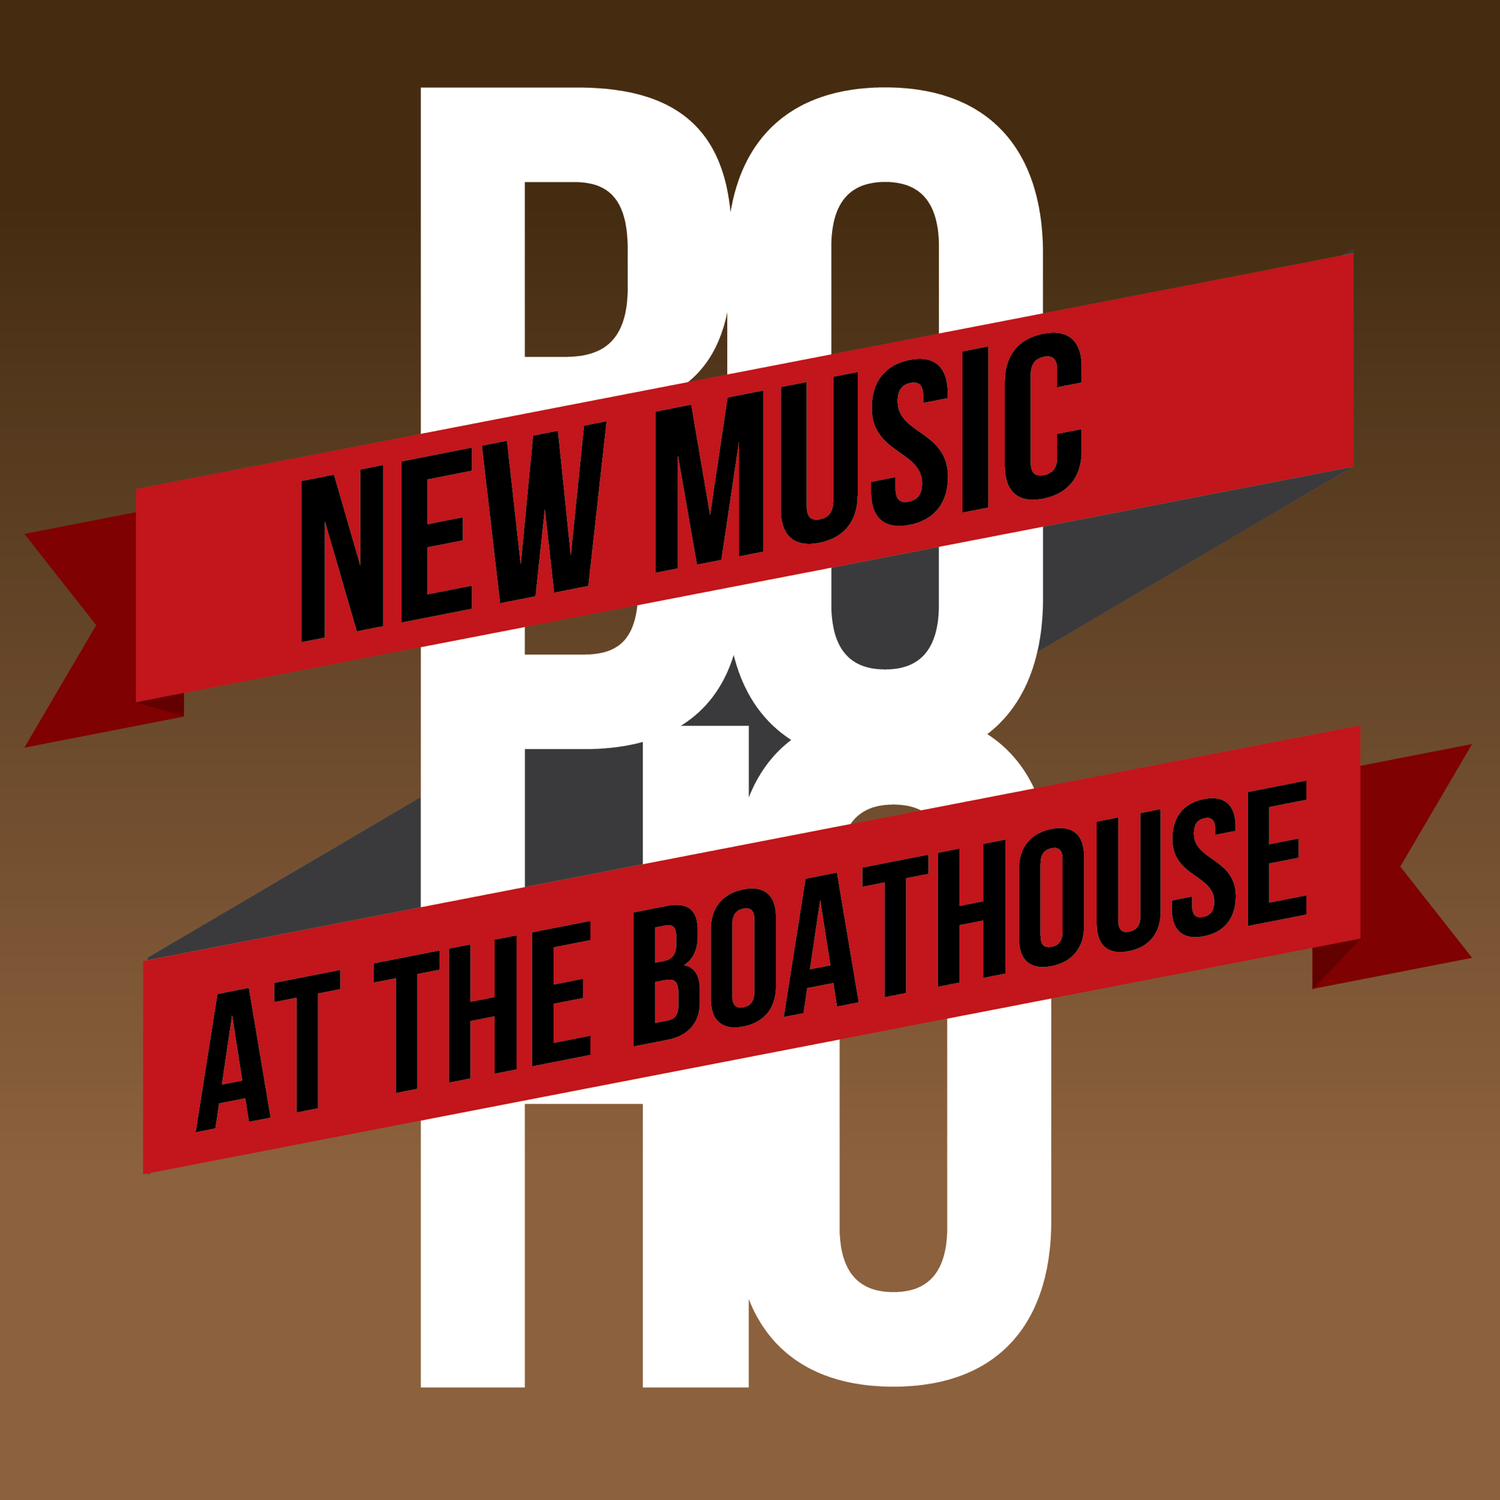 New Music at the Boathouse